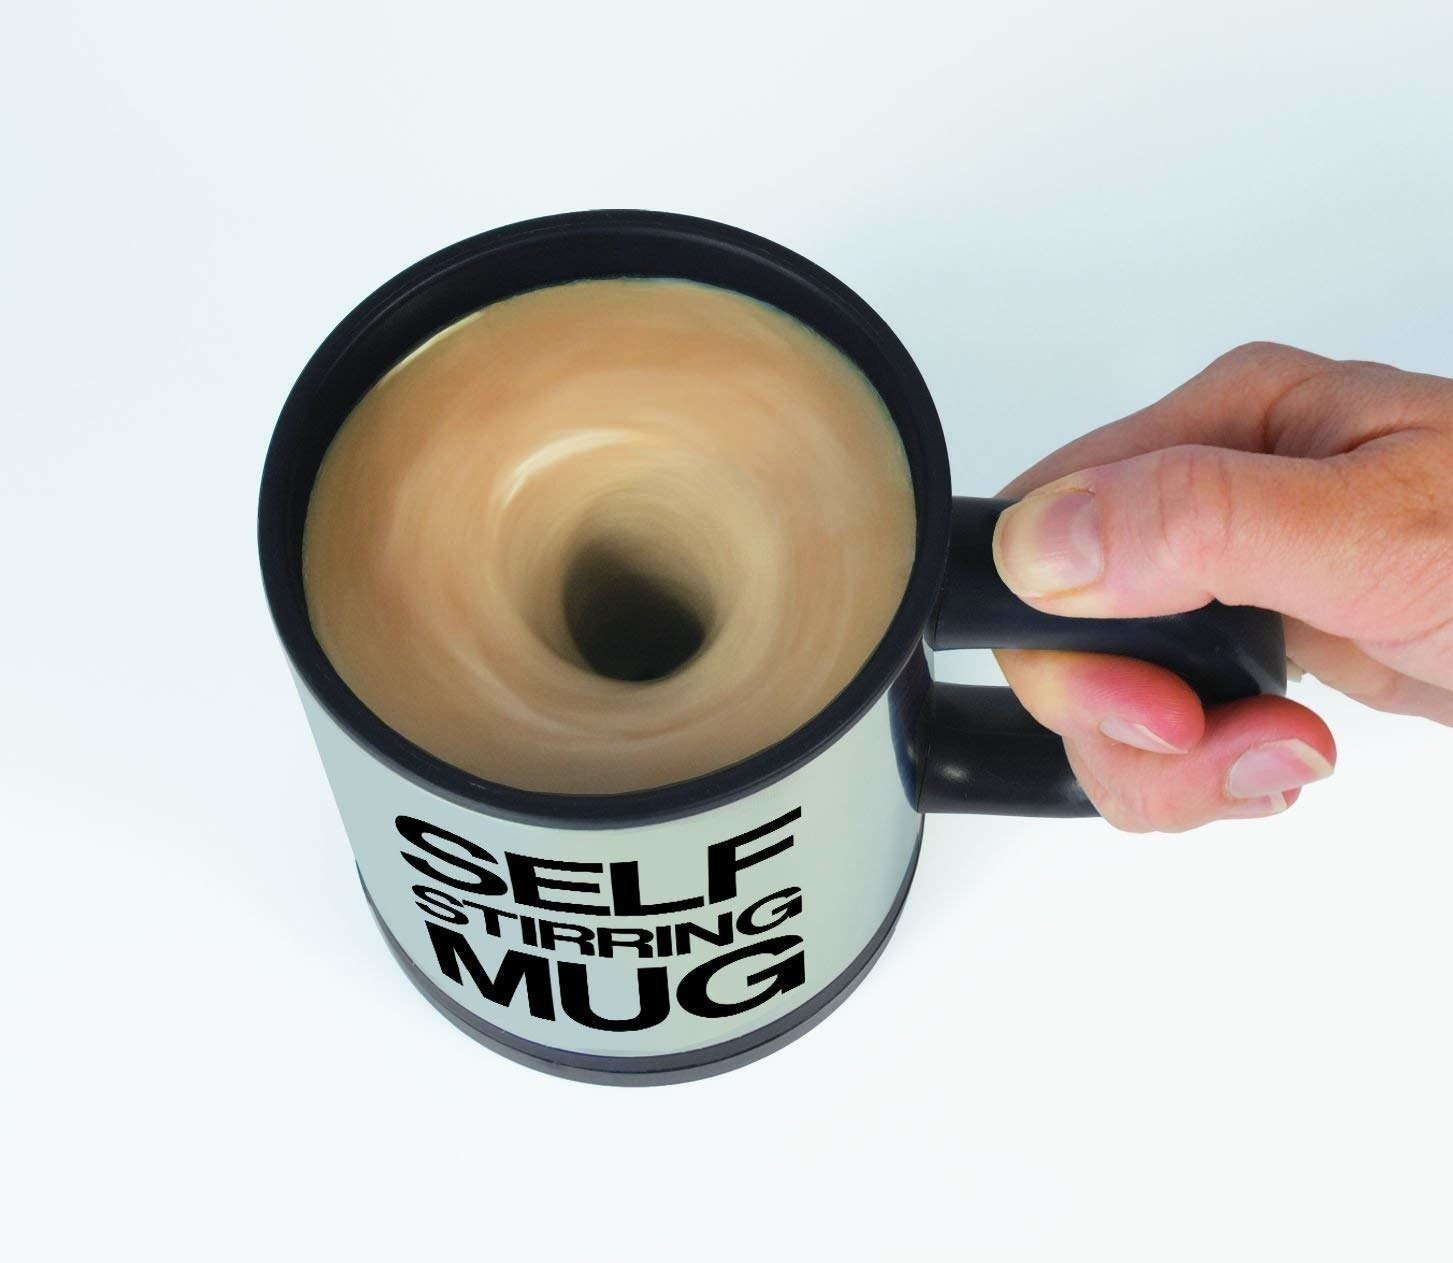 A hand holding the mug while the coffee inside is stirred.